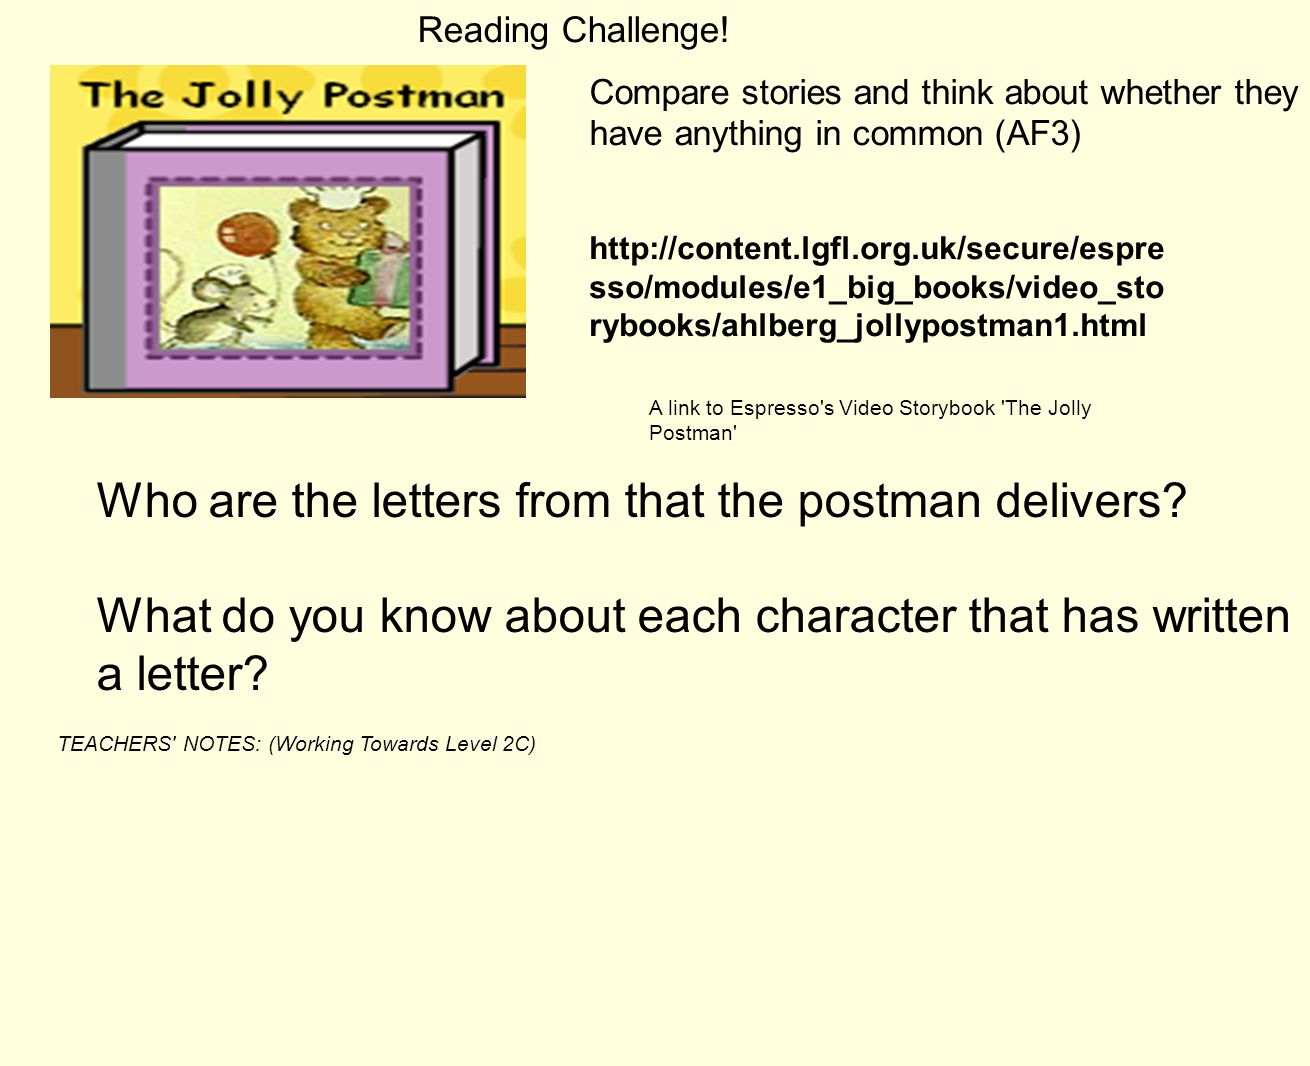 TEACHERS NOTES: (Working Towards Level 2C) Compare stories and think about whether they have anything in common (AF3) http://content.lgfl.org.uk/secure/espre sso/modules/e1_big_books/video_sto rybooks/ahlberg_jollypostman1.html Who are the letters from that the postman delivers.